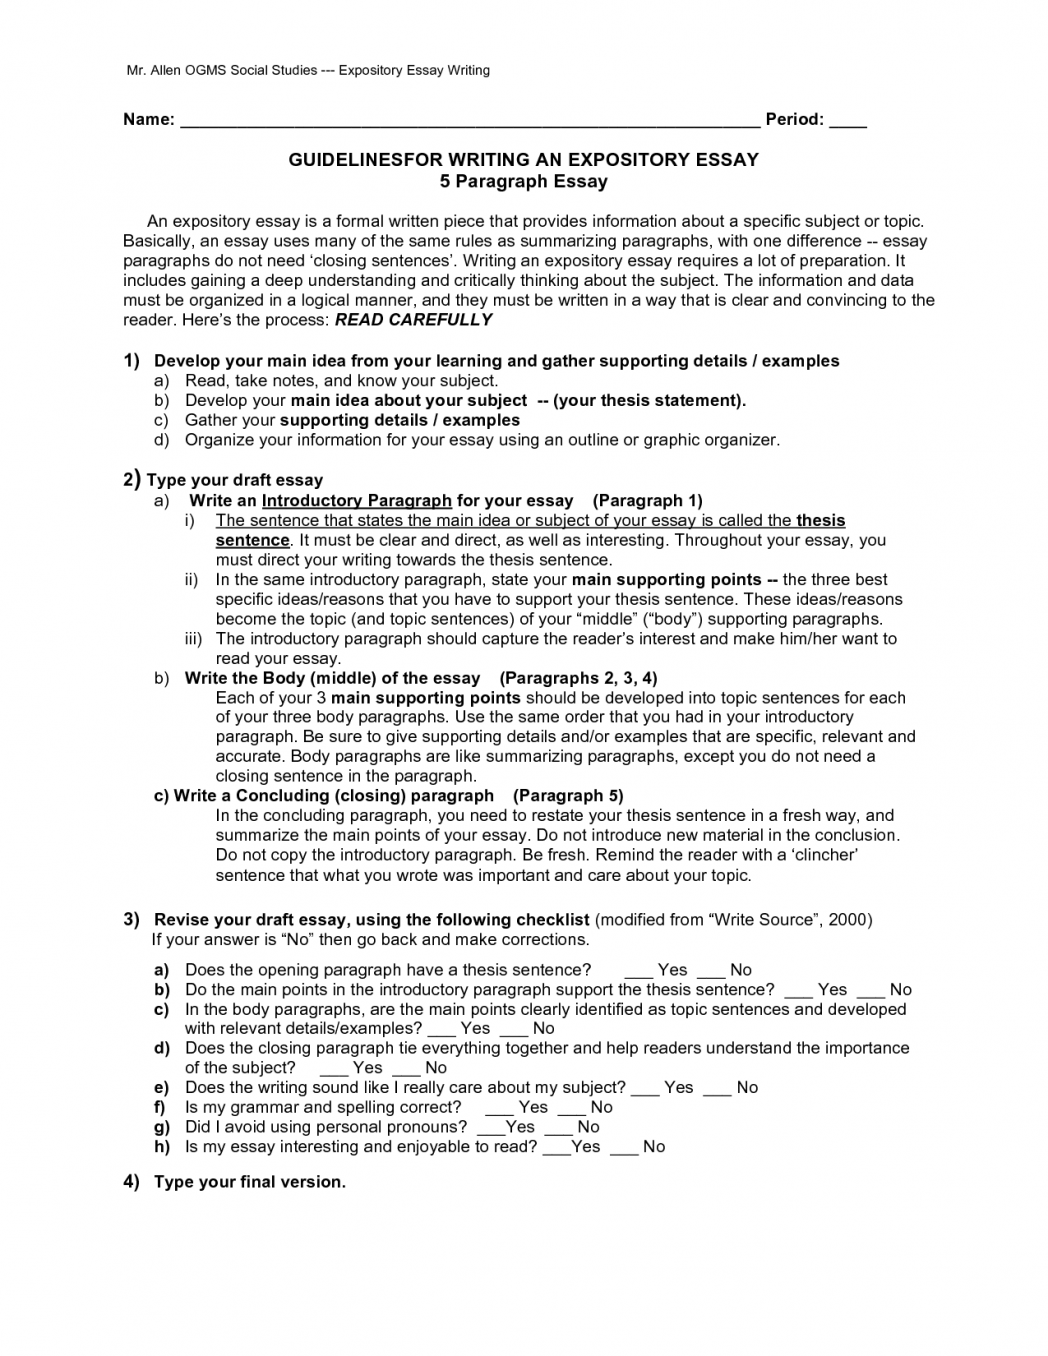 014 Essay Example Sample Of Cause And Effect From Thesis To Writing Howenage Pregnancy Persuasive Expository Statementmplate Hda About Argumentative In The Philippines 1048x1356 Astounding Teenage Photo Tagalog Introduction Causes Full